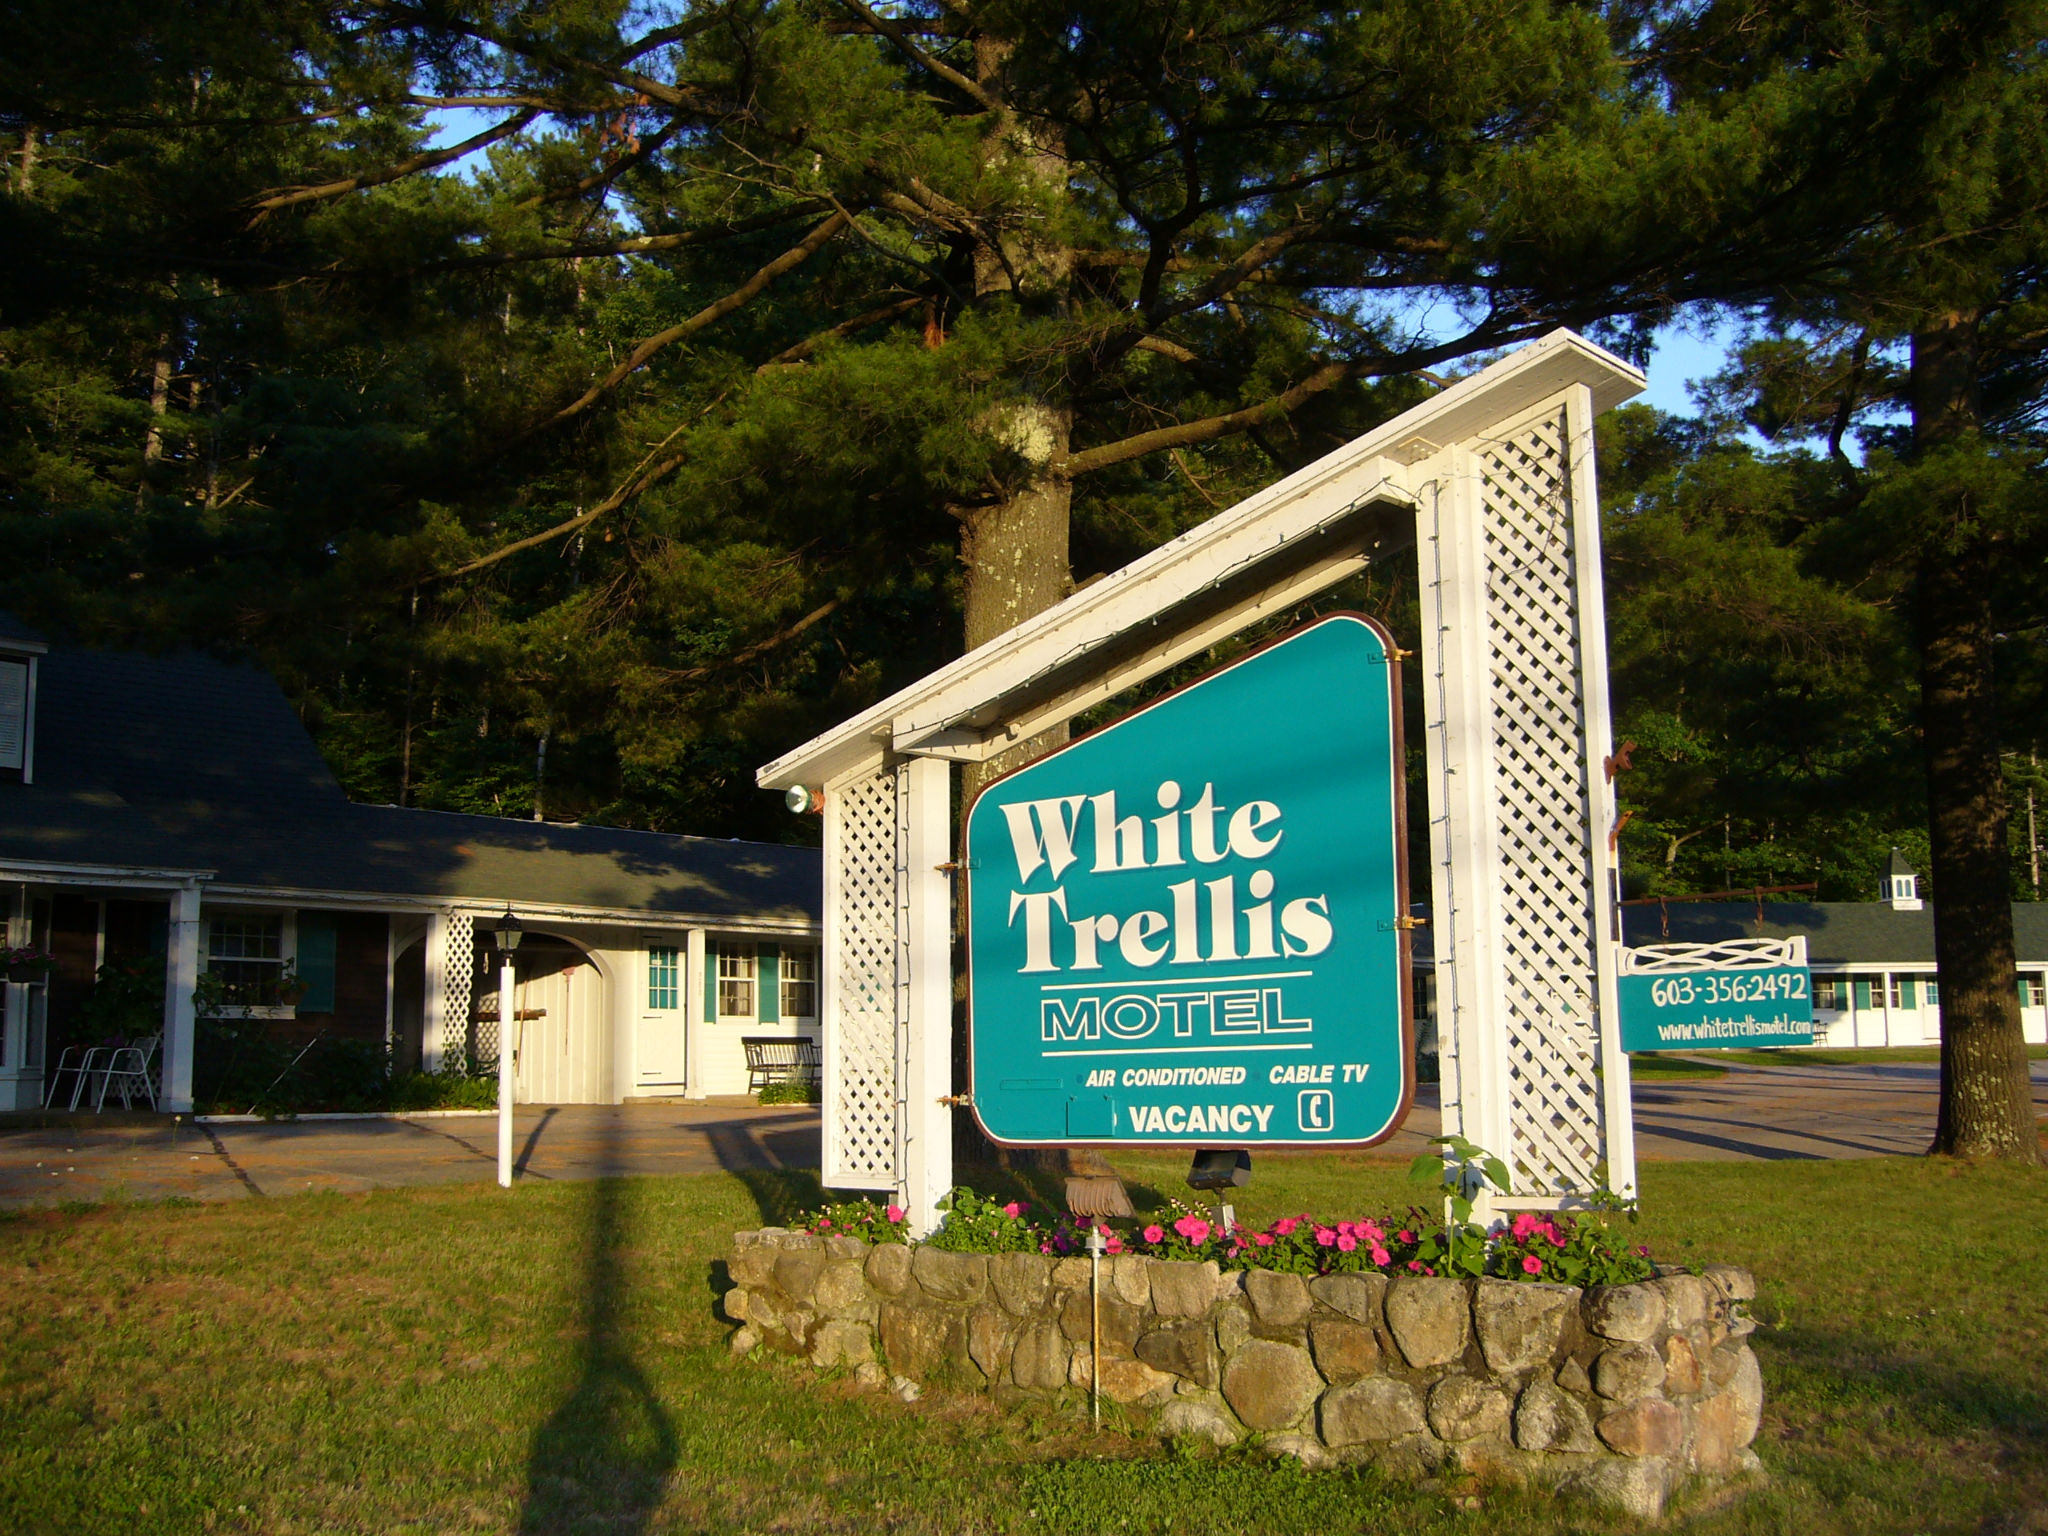 Welcome to the White Trellis Motel